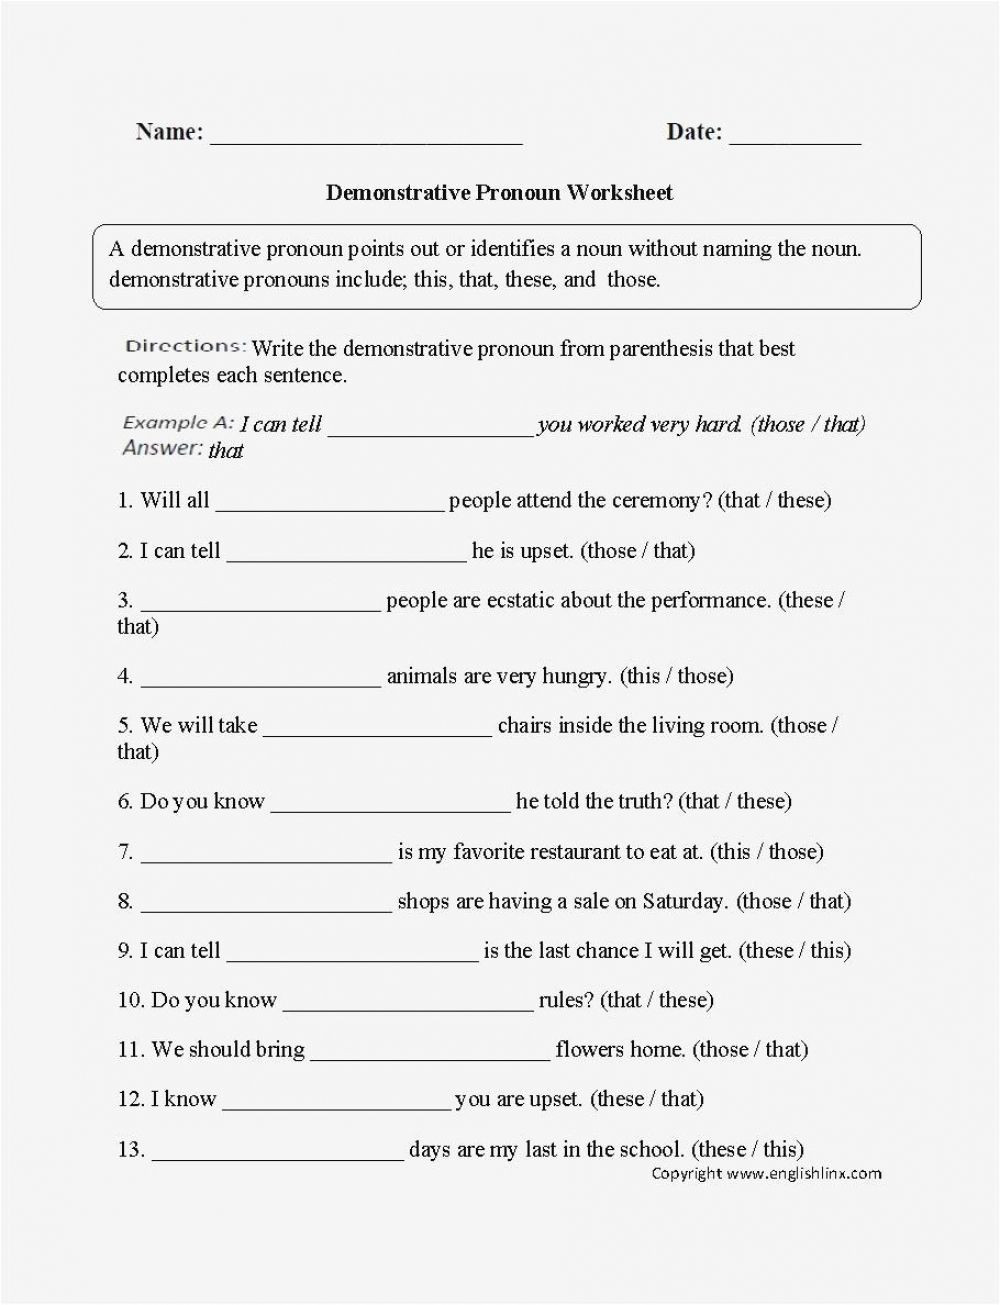 Prepositional Phrases Worksheet 6th Grade Pin On School Learning Subjects